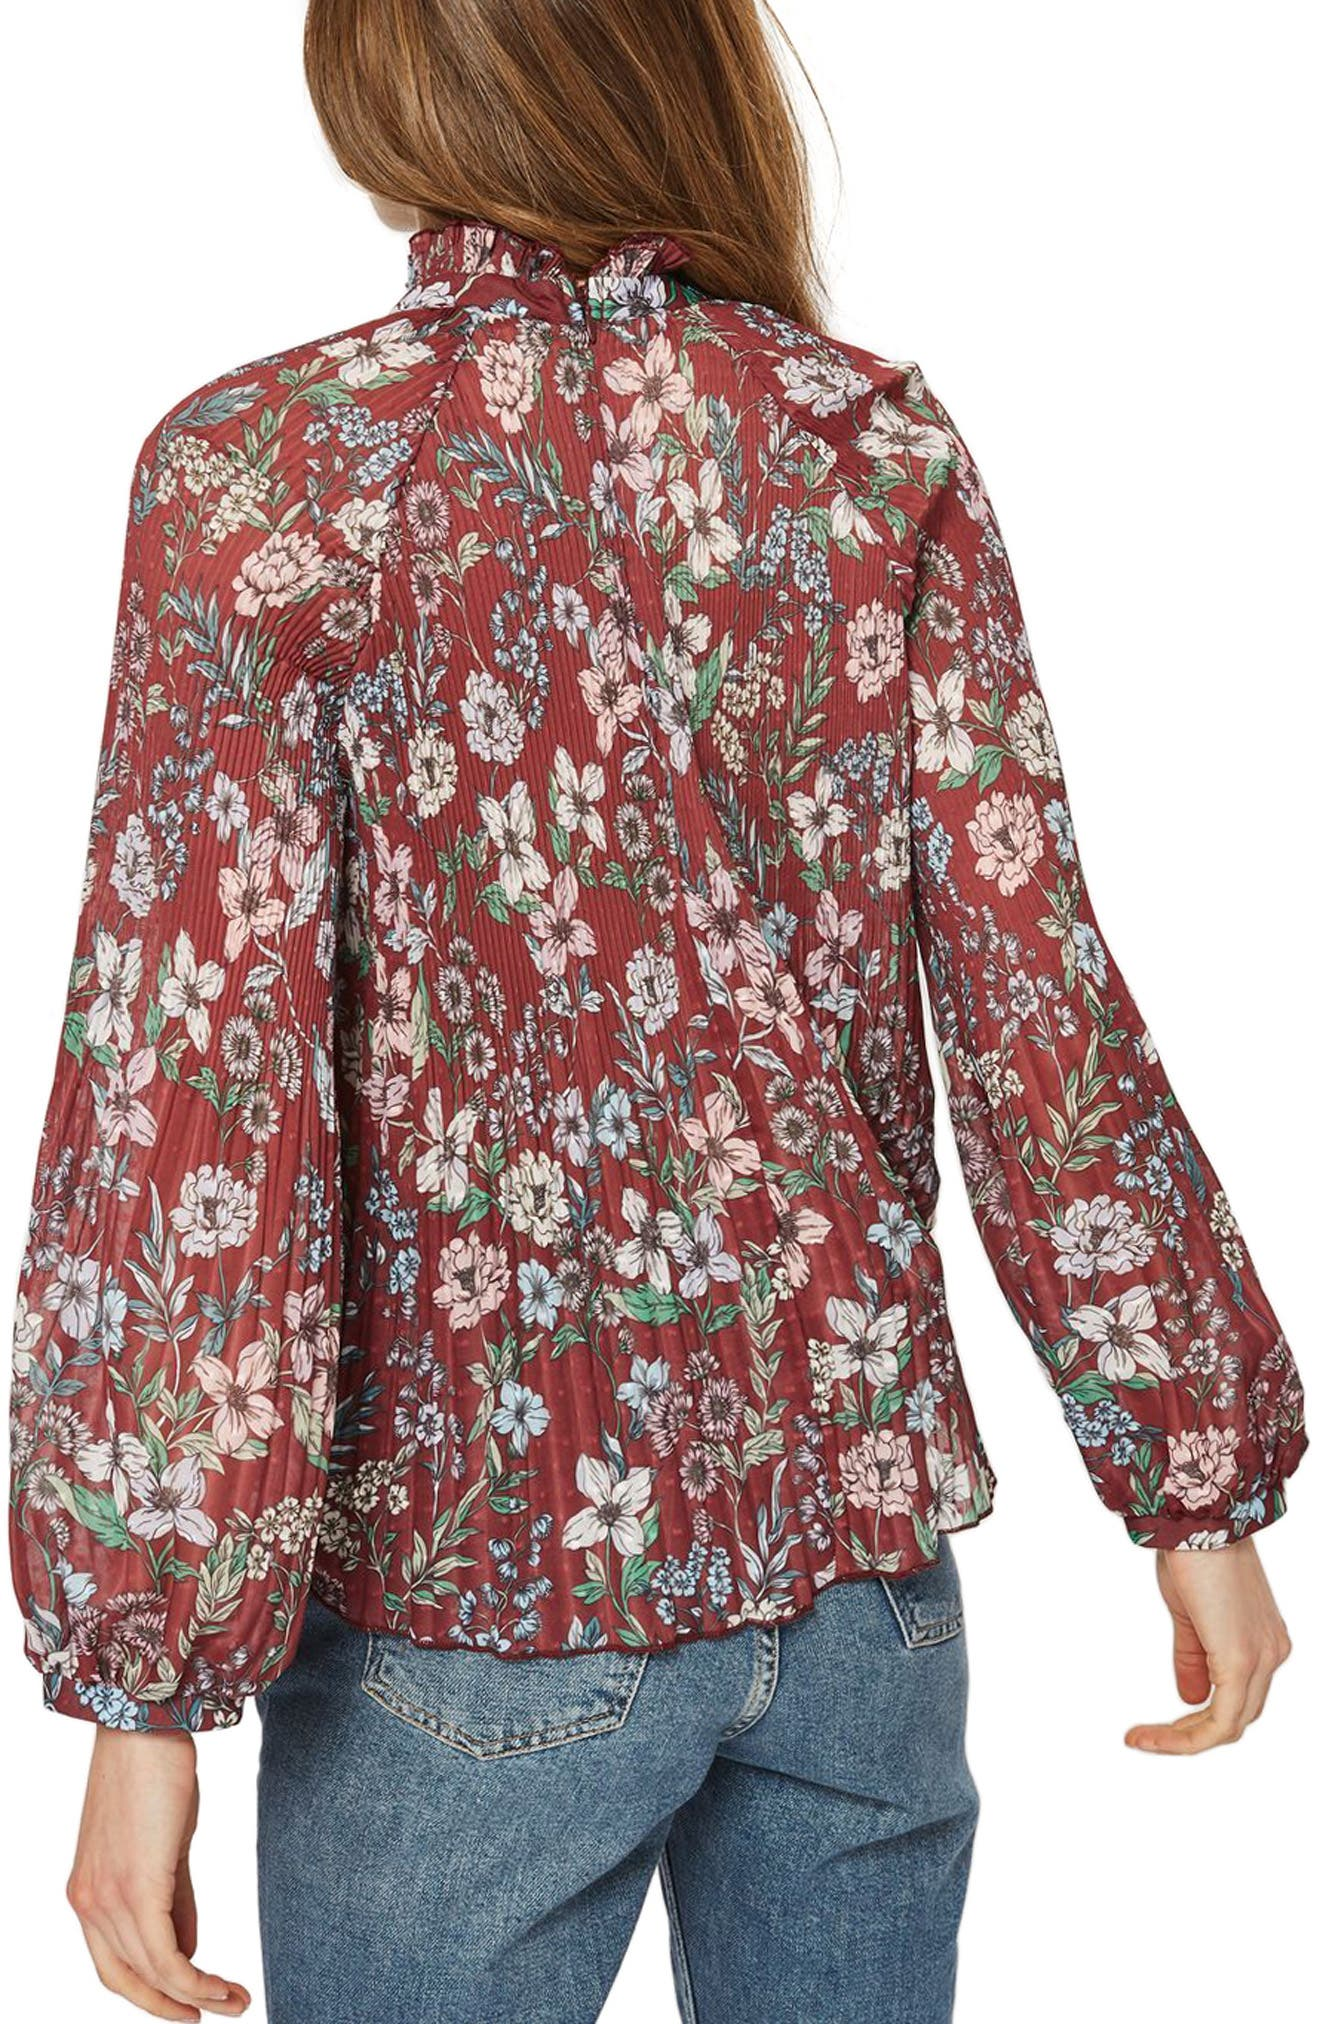 Floral Pleat Tunic Blouse,                             Alternate thumbnail 3, color,                             Burgundy Multi